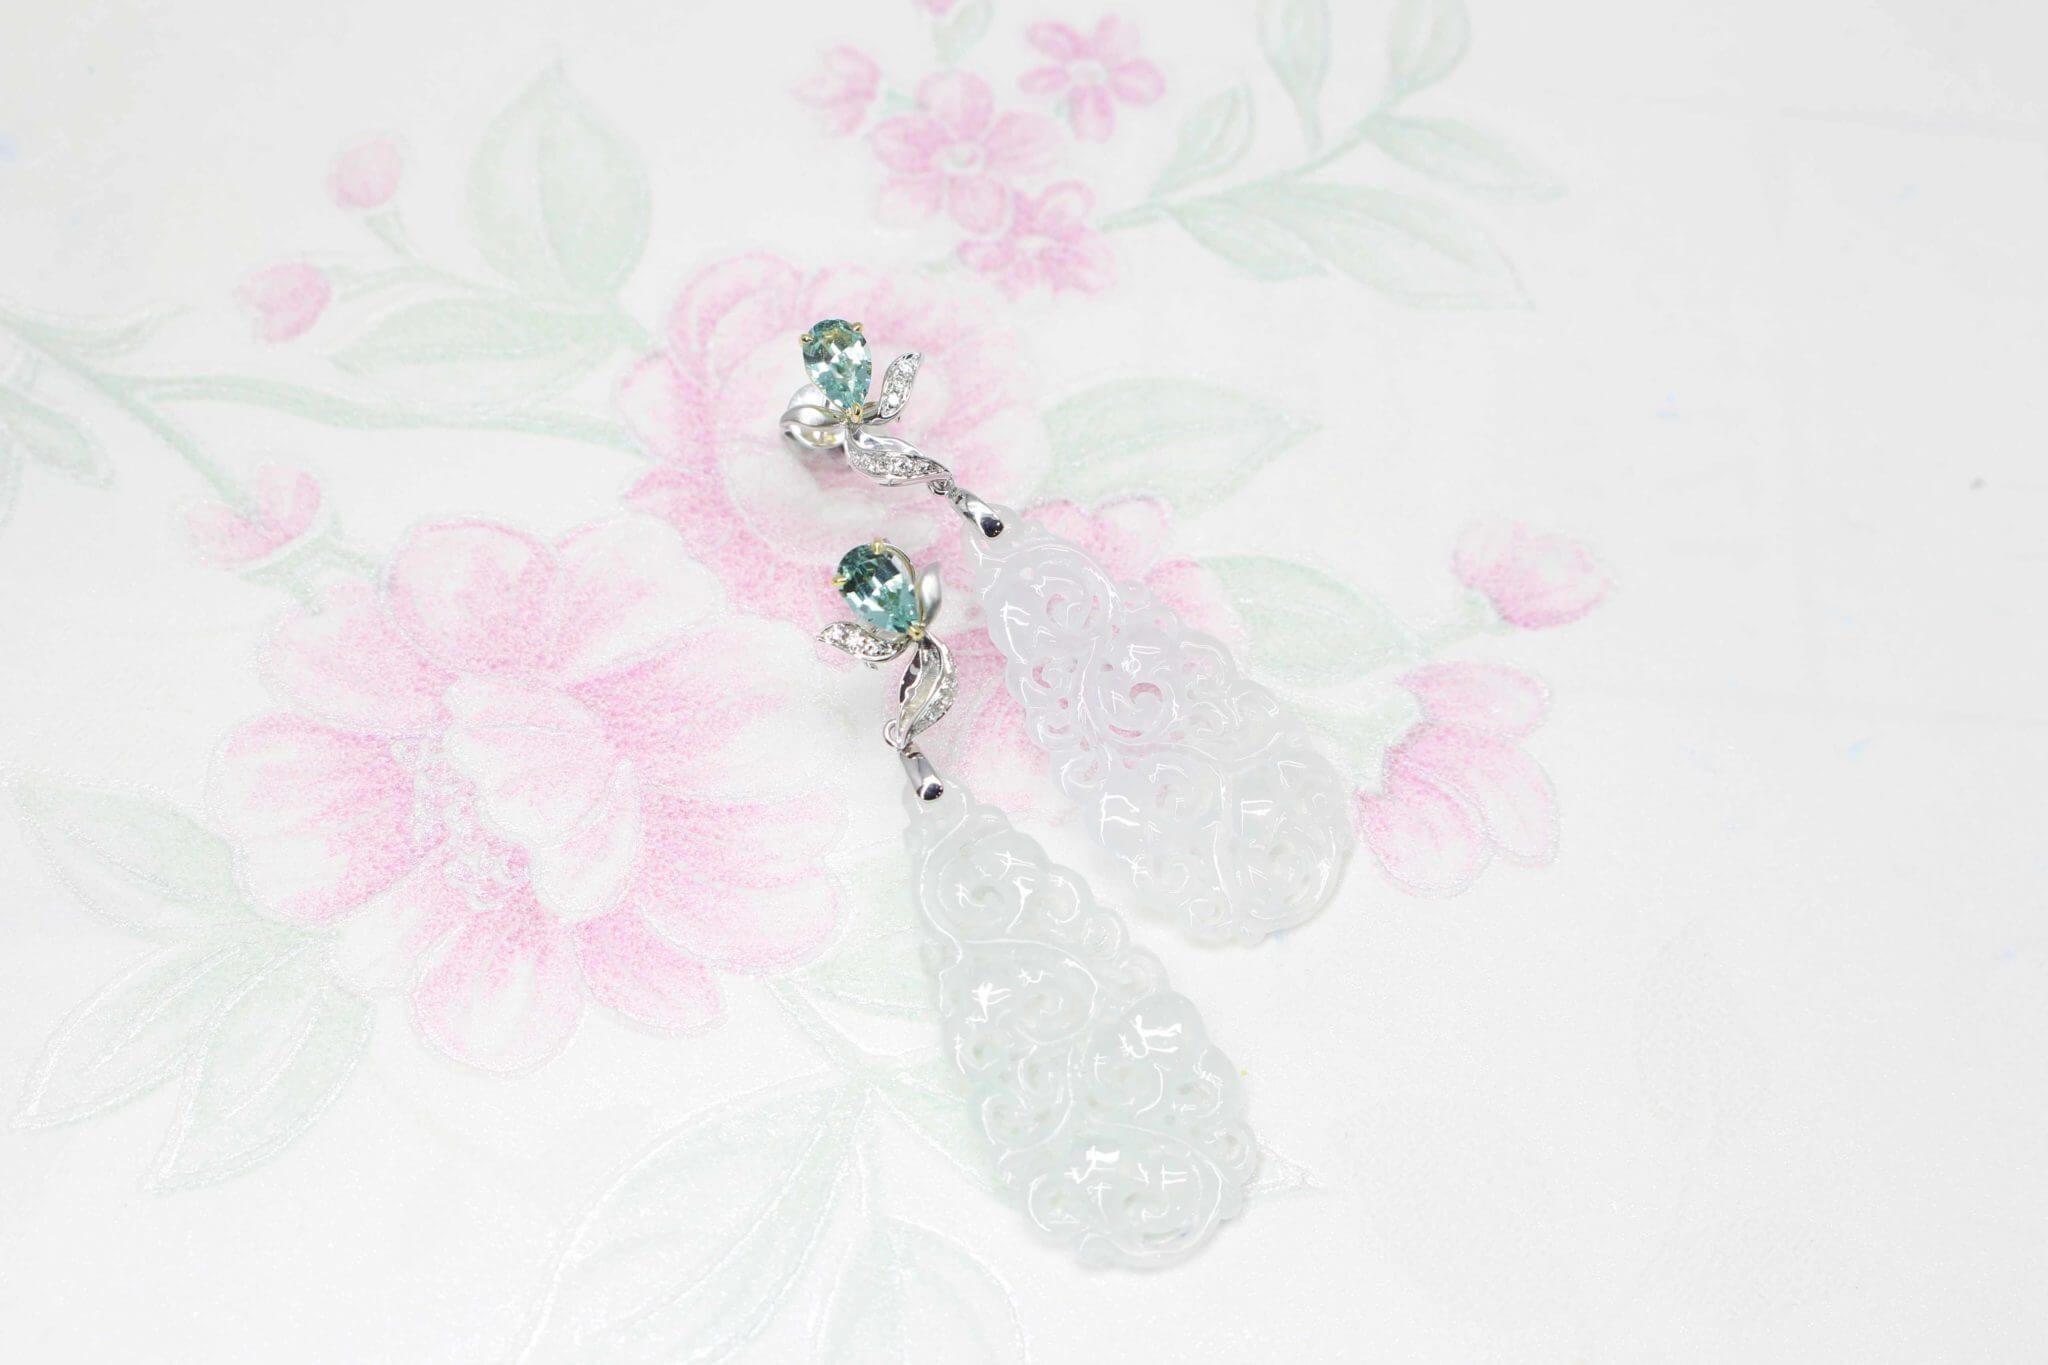 Green Tourmaline Gemstone with Jade Dangle Earring dressing up for Chinese New Year celebration - Customised Chinese Oriental jewellery for Chinese New Year celebration | Local Singapore customised with gemstone and jade